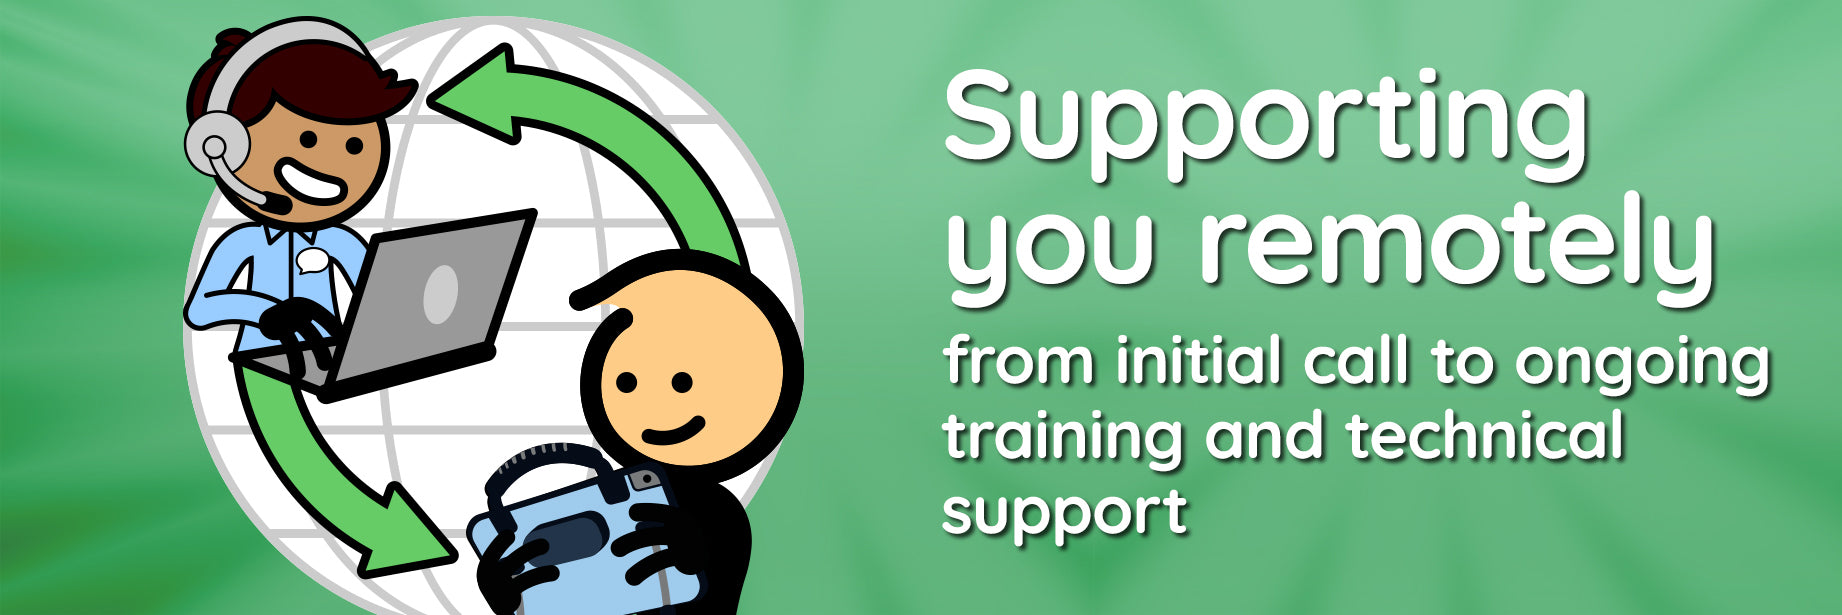 Supporting you remotely from initial call to ongoing training and technical support